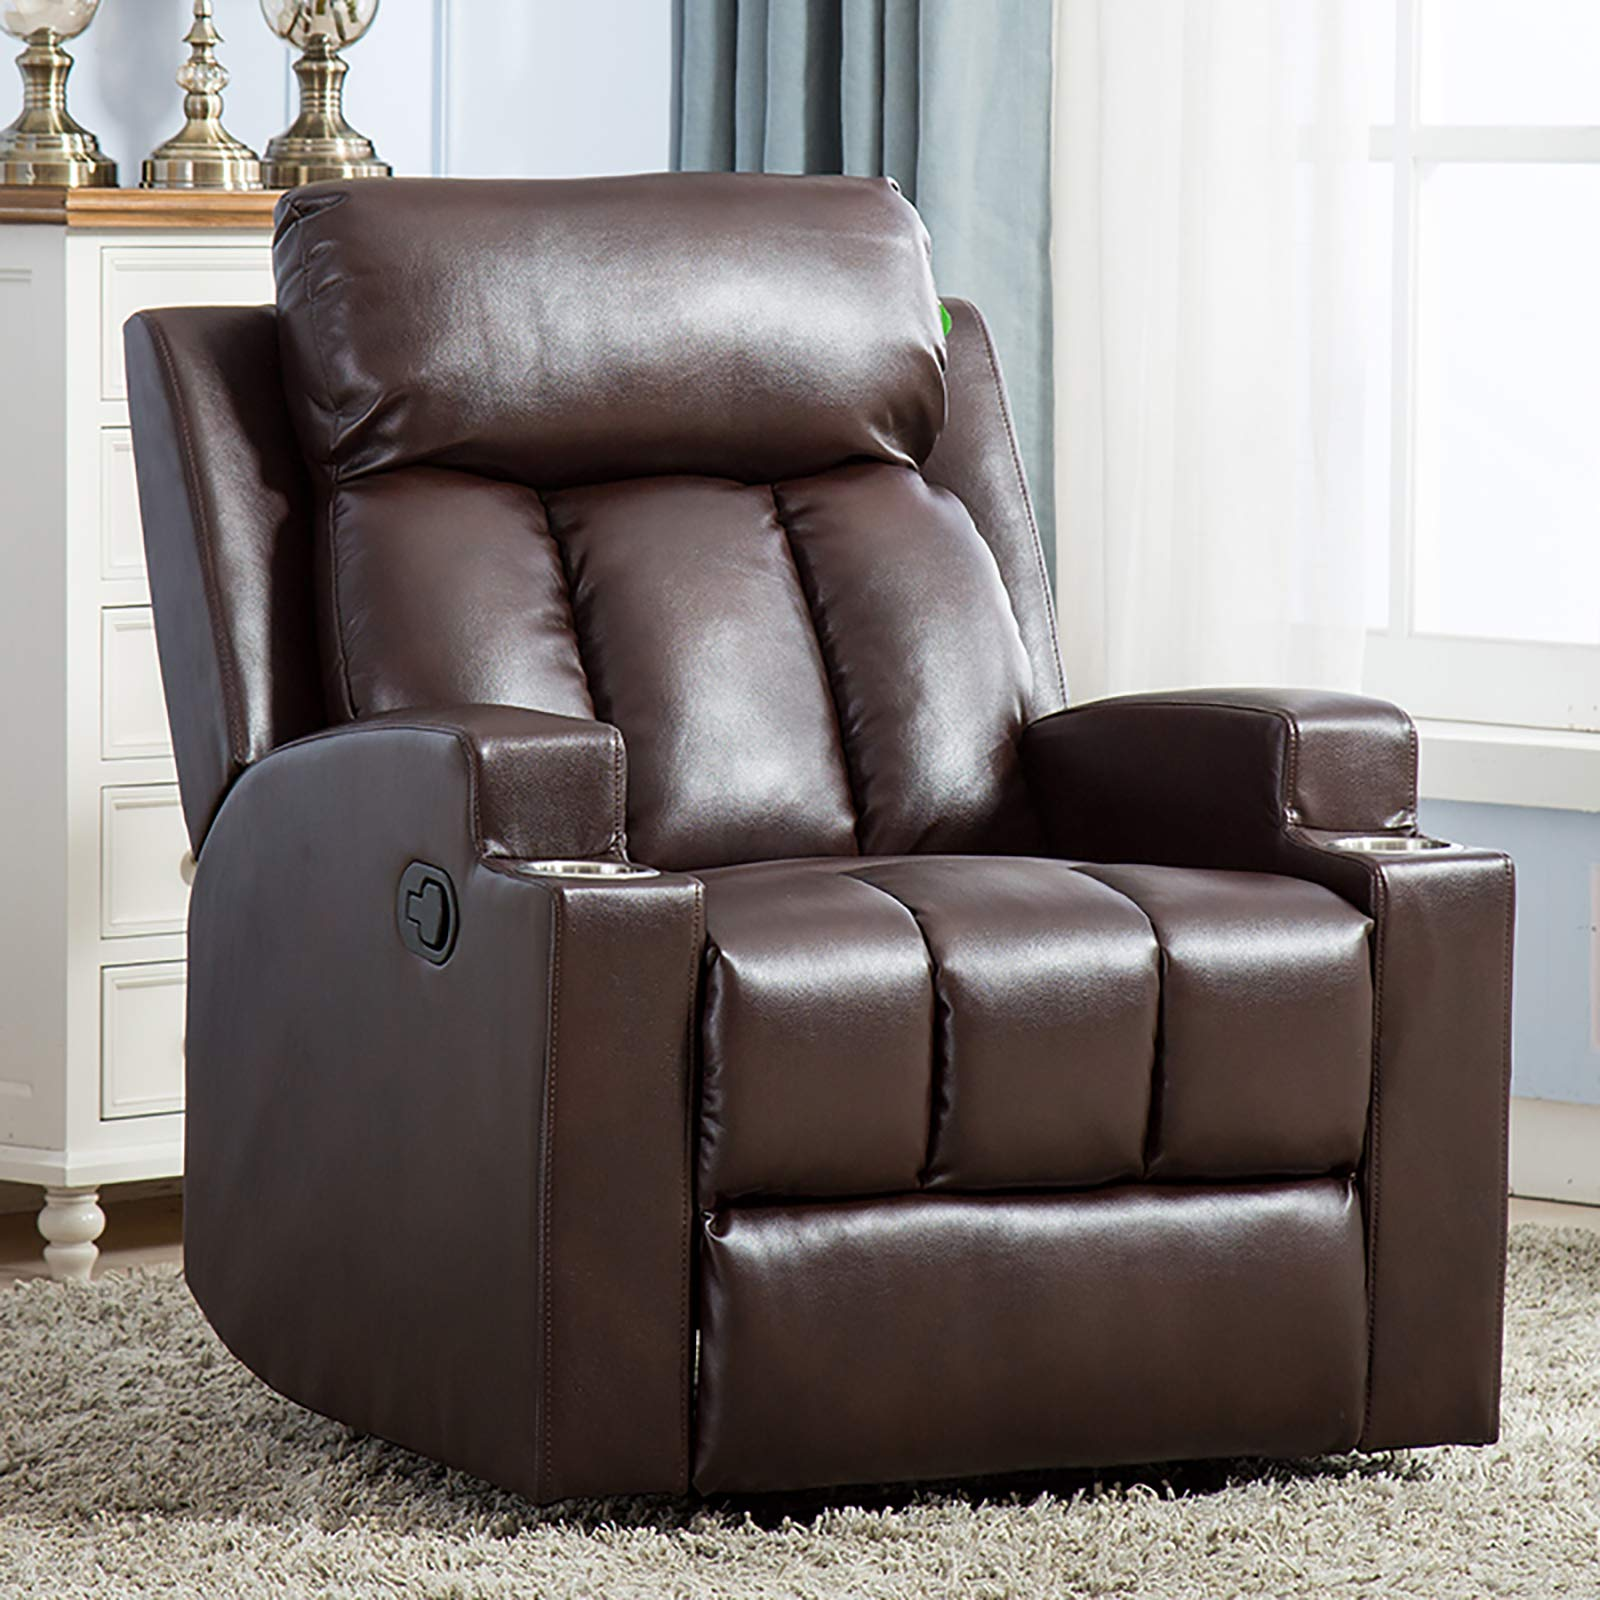 ANJ Recliner Contemporary Theater Chocolate